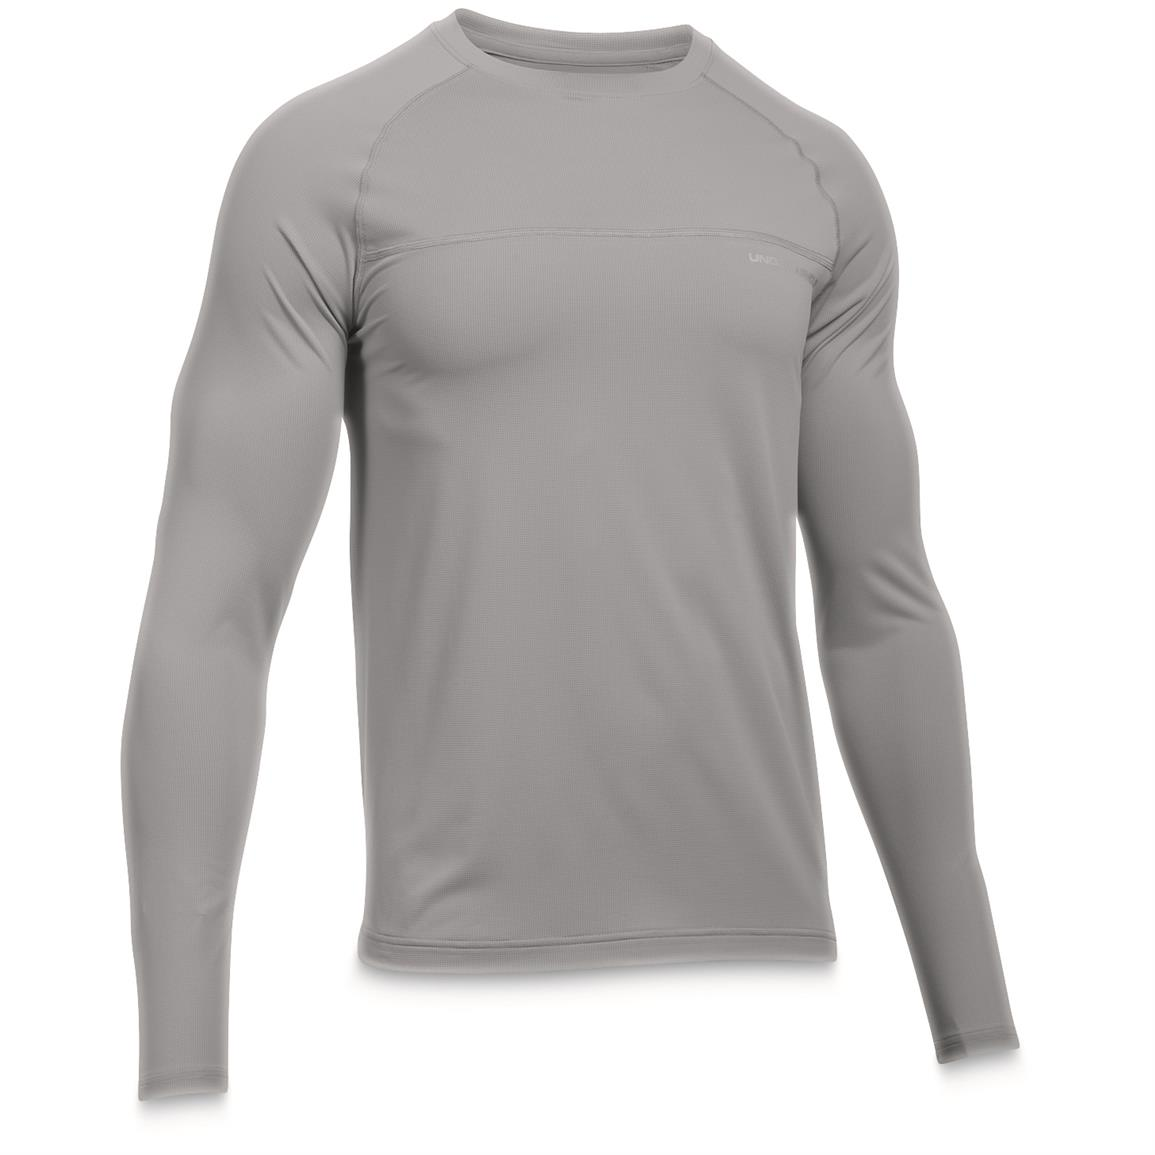 Under Armour Men's Sunblock Long Sleeve Tee, UPF 50+, Overcast Gray